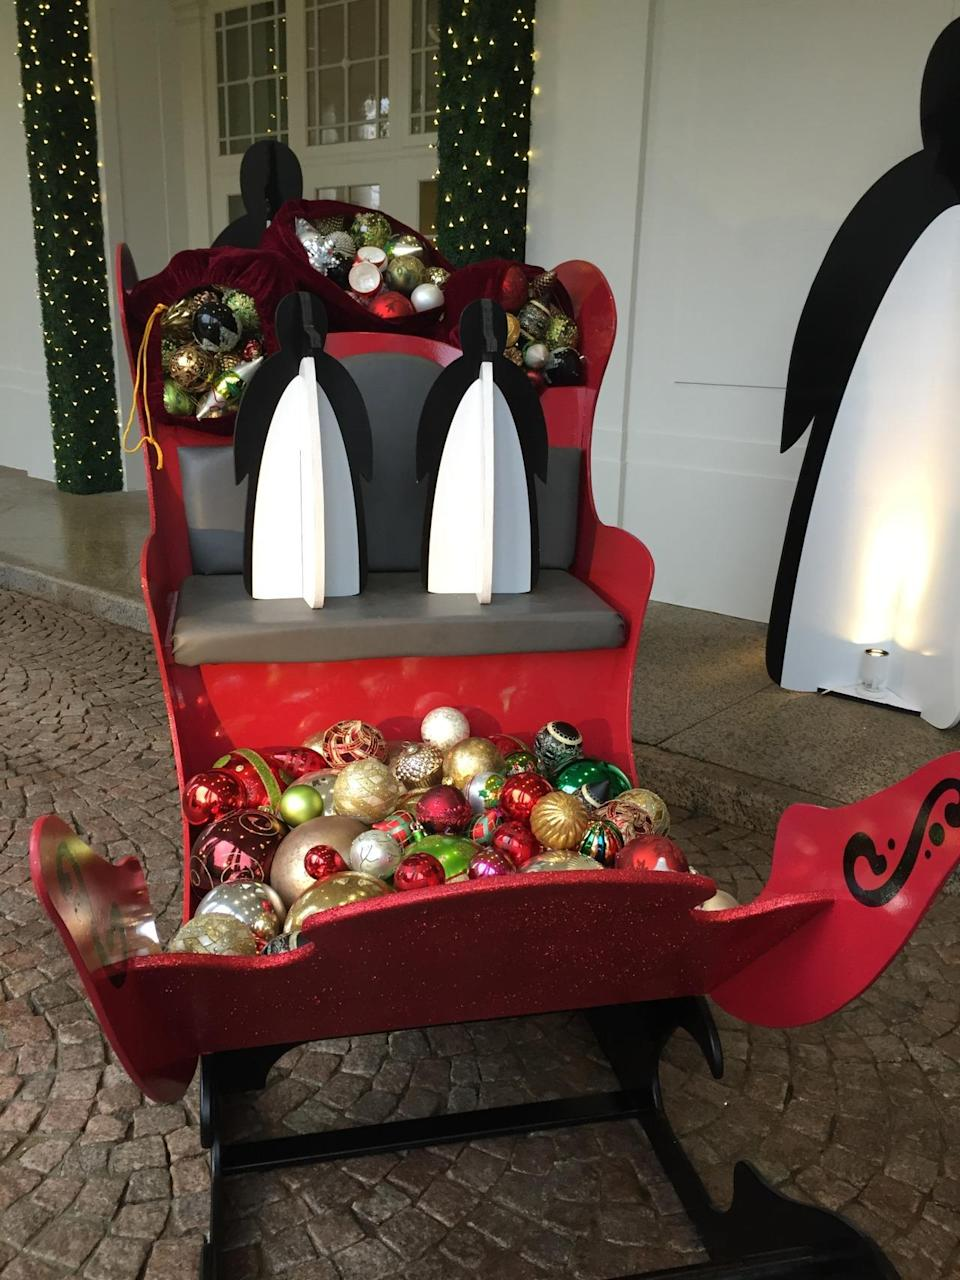 <p>Guests to the White House are greeted by massive wooden penguins and a penguin-driven sleigh full of ornaments outside the East Wing entrance. (Photo: Cassie Carothers)</p>